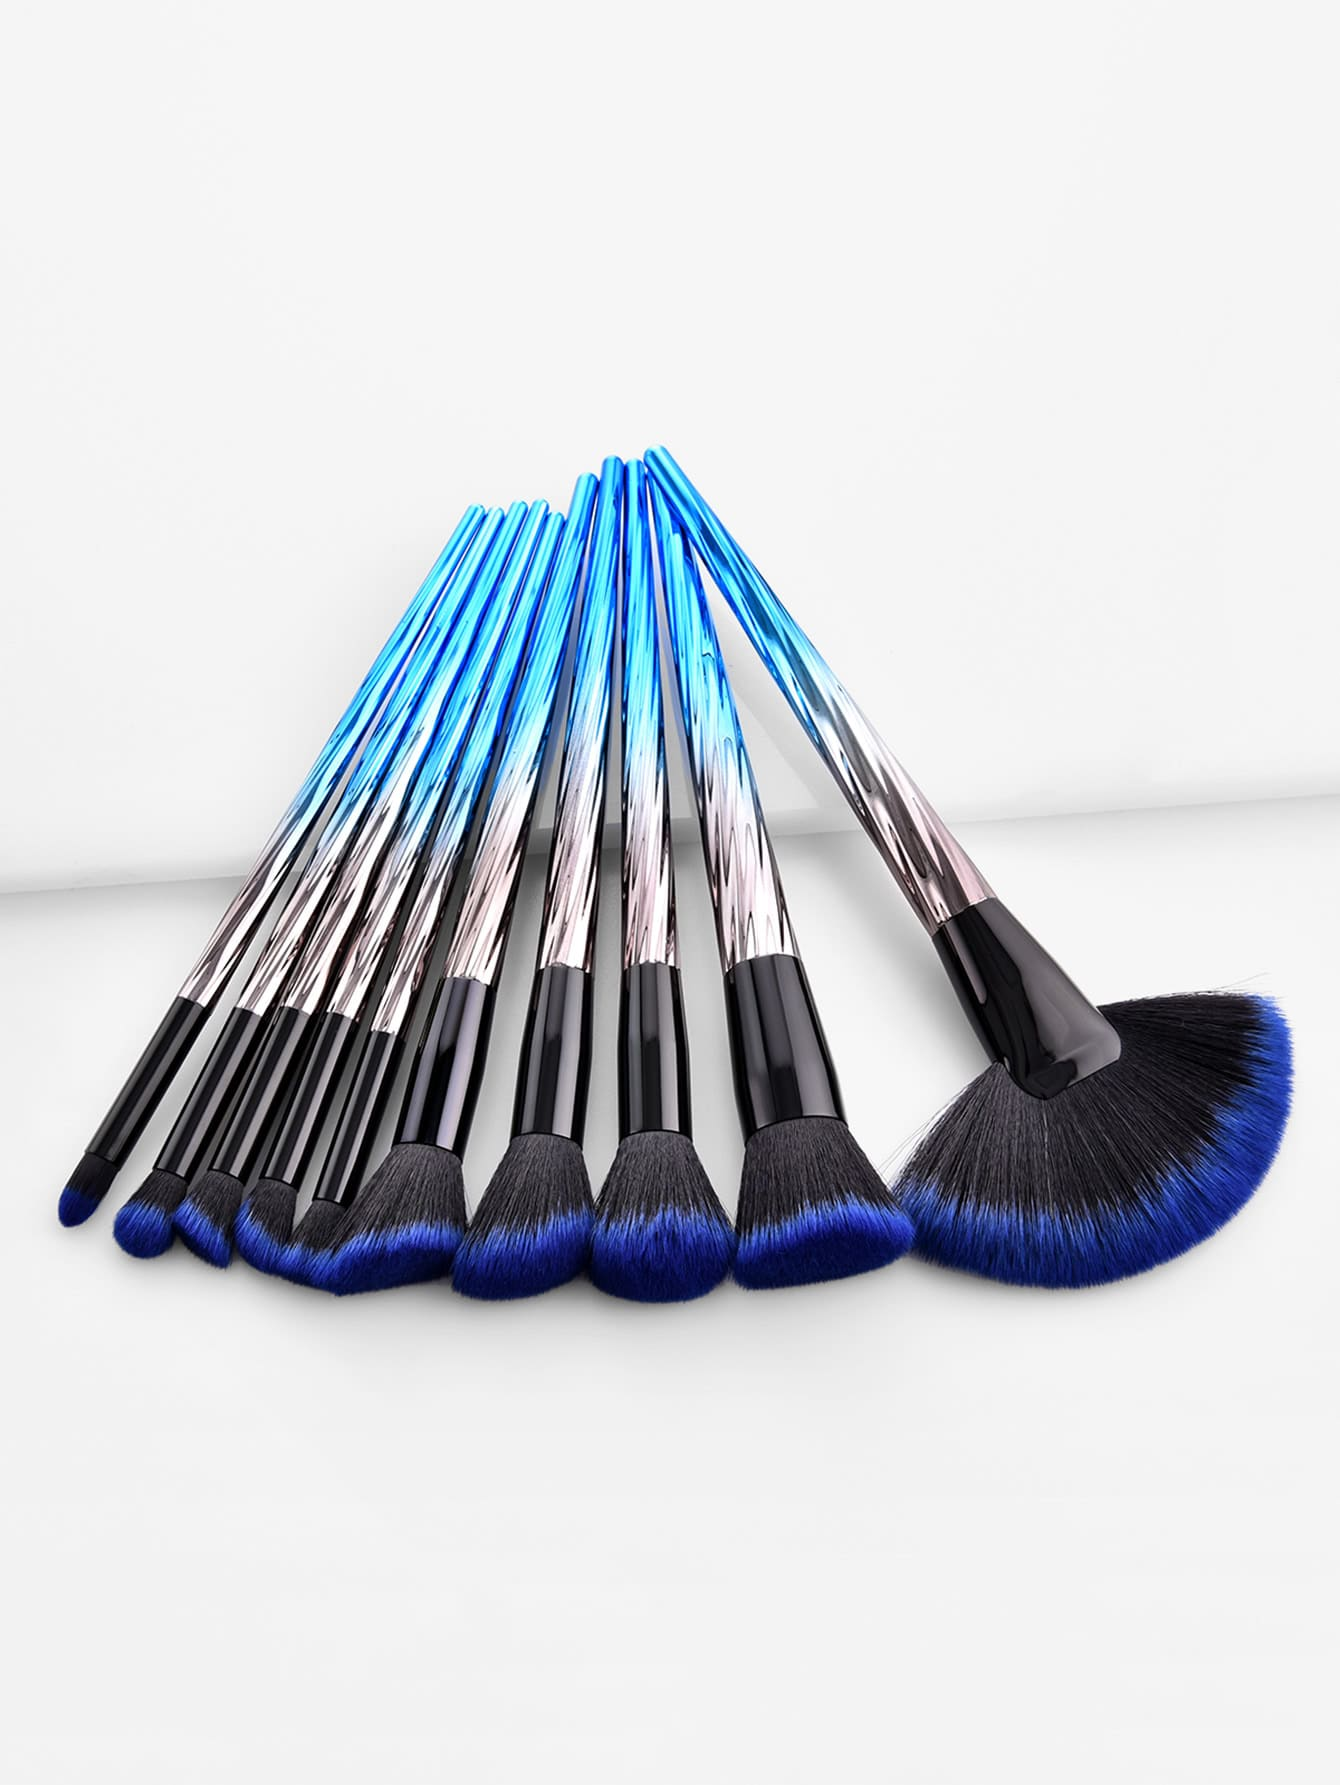 Image of Ombre Handle Makeup Brush 10pcs